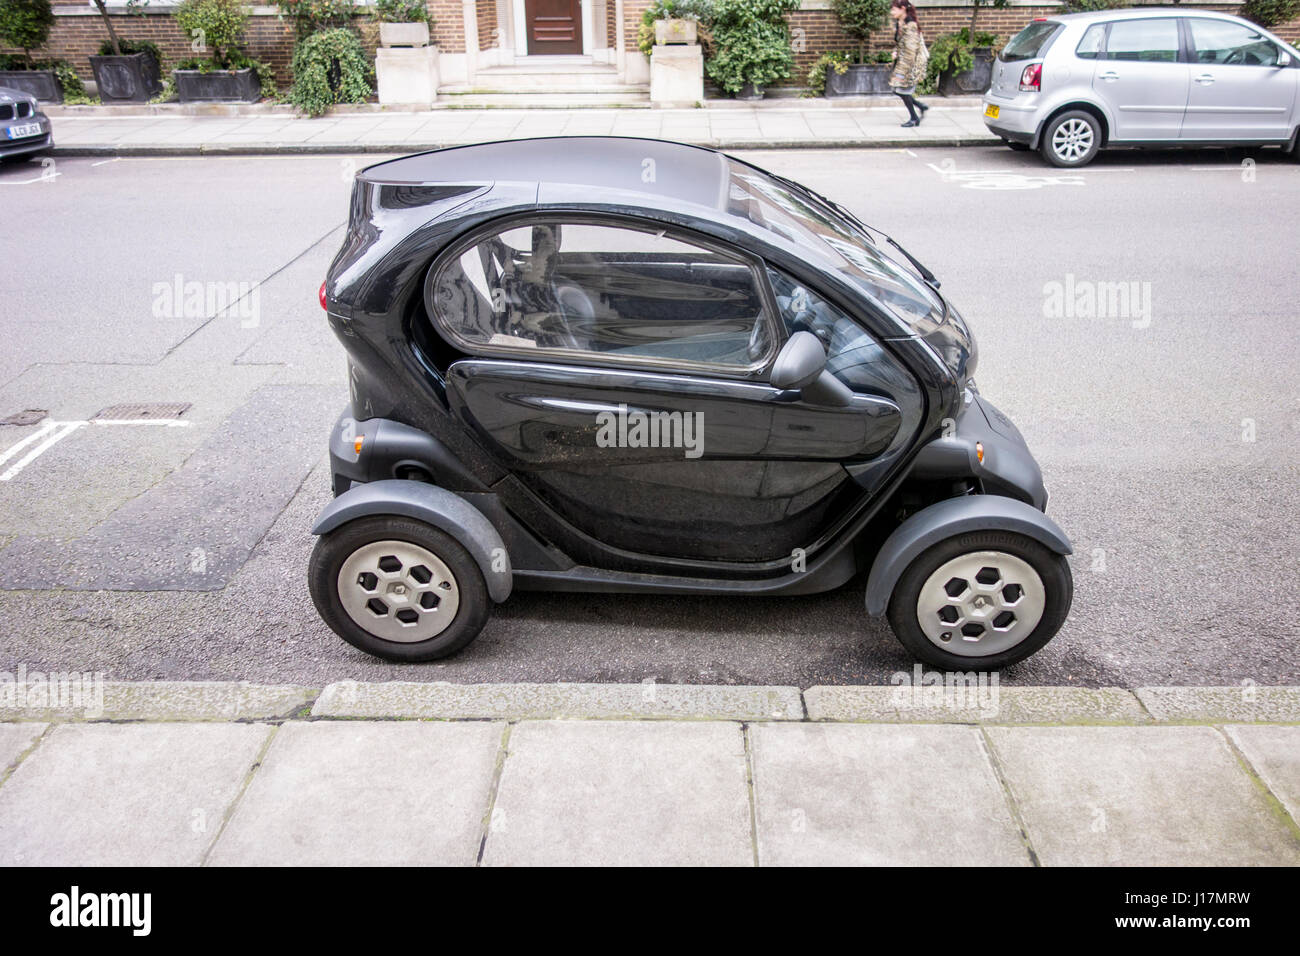 Renault Twizy small electric vehicle / car parked on a London street, UK - Stock Image